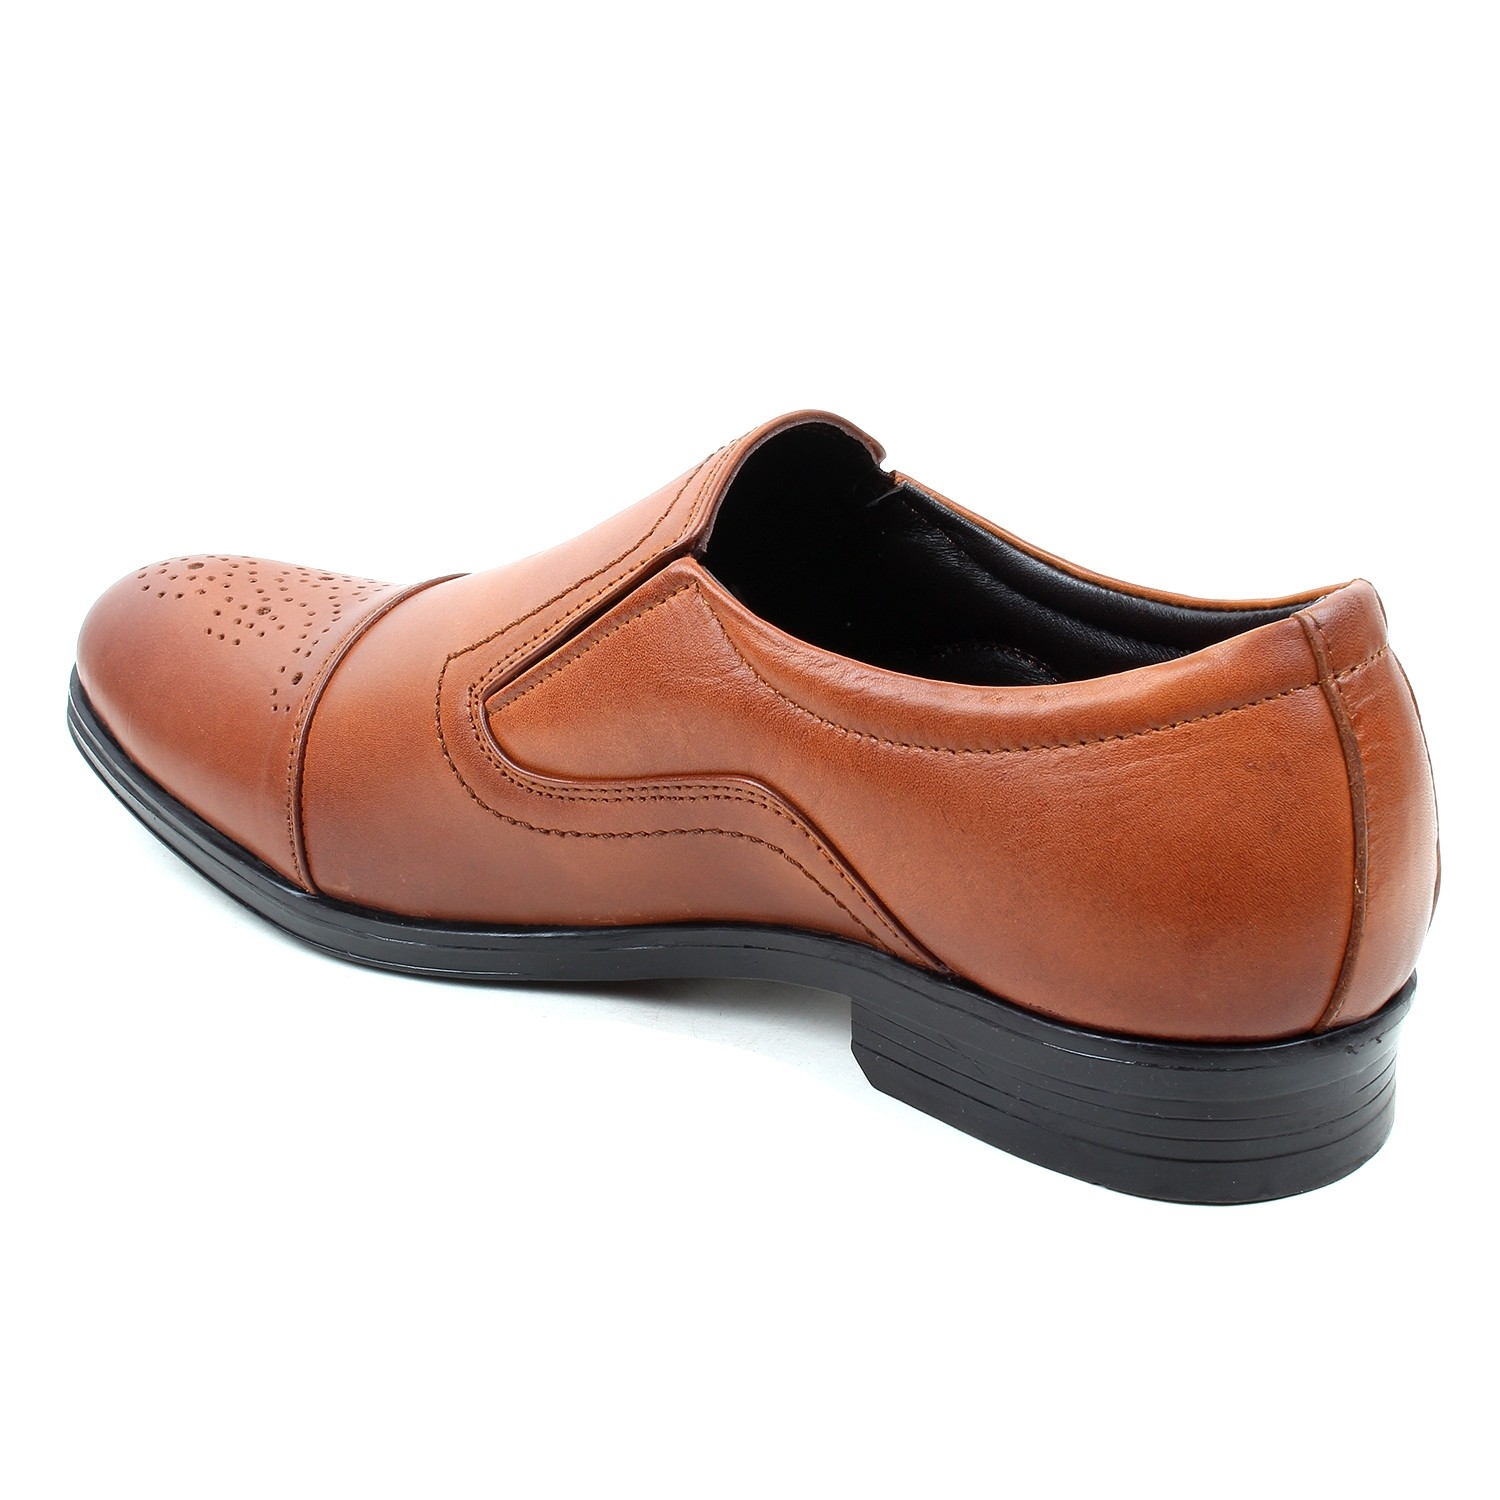 Kosher Leather Brown Shoes Men